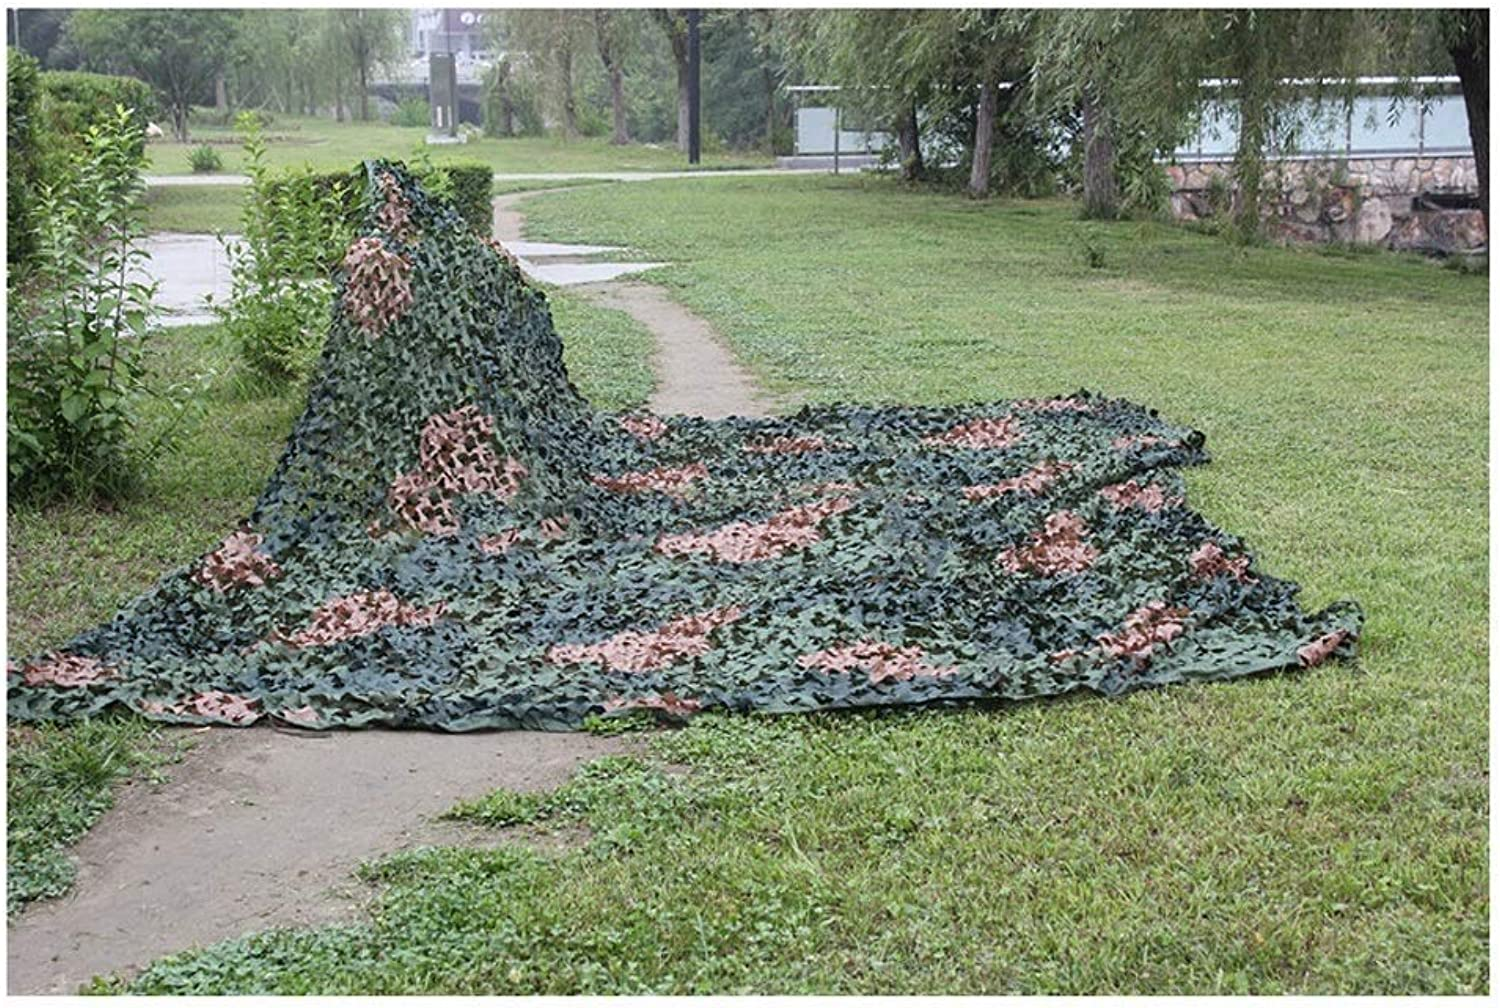 Camouflage Net Shade Net Hidden Net Predection Net CS Game Shooting Decoration Net Outdoor Tent Balcony Jungle Flower Plant Jungle Camouflage Multi-Size Optional (Size   2  3M)